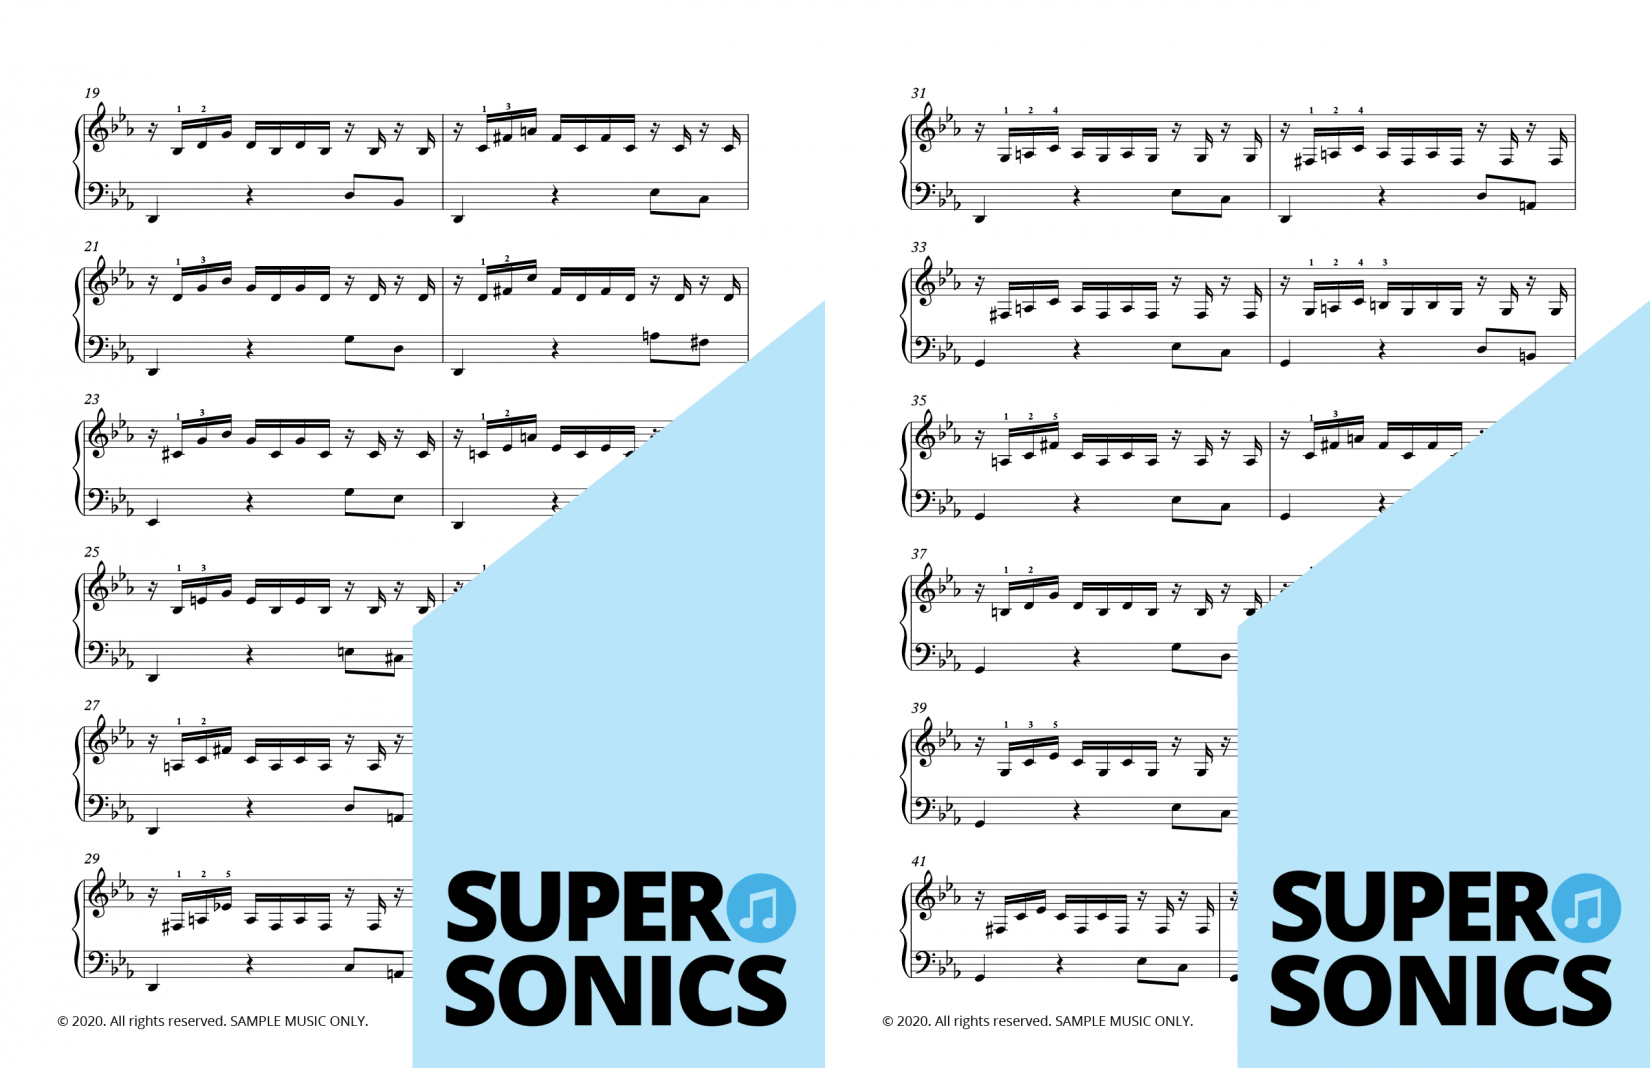 Supersonics Piano Method Level 5 Historical Sounds sample